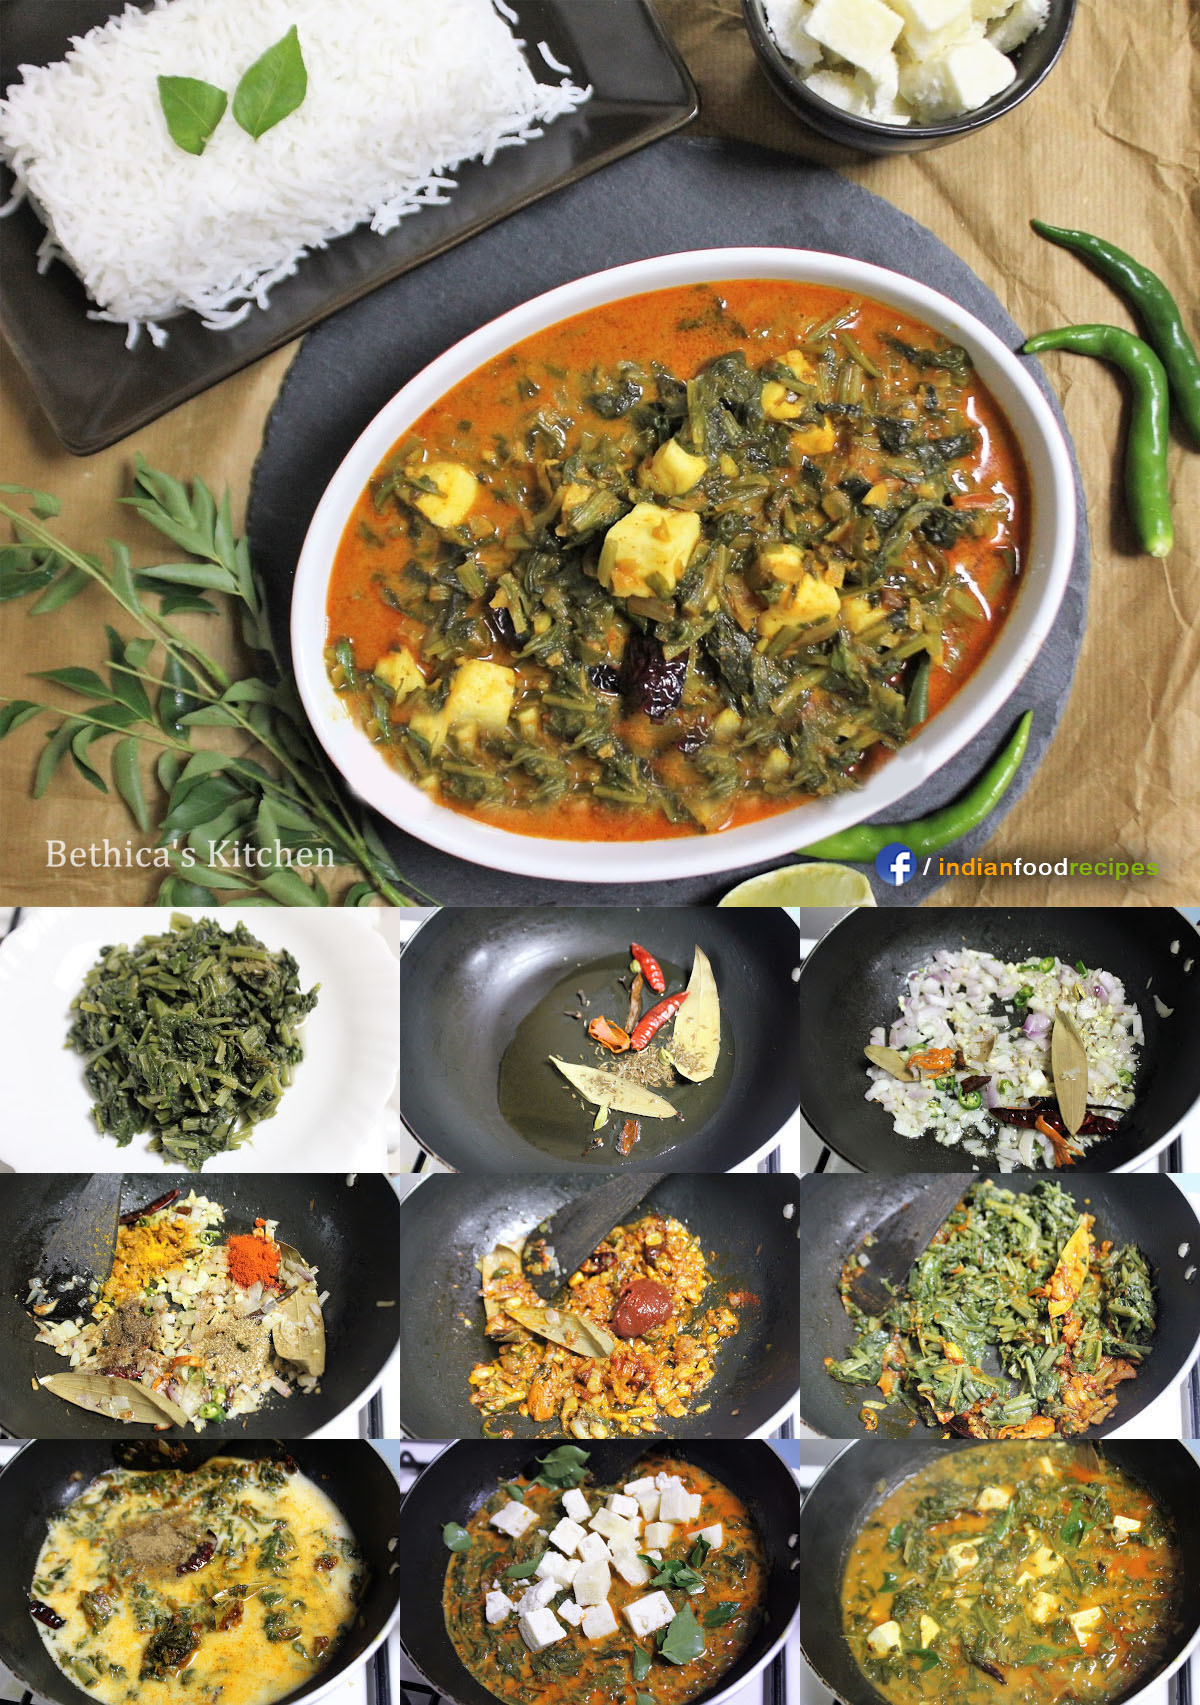 Palak Paneer (Spinach-Cottage Cheese) in Coconut Milk recipe step by step pictures